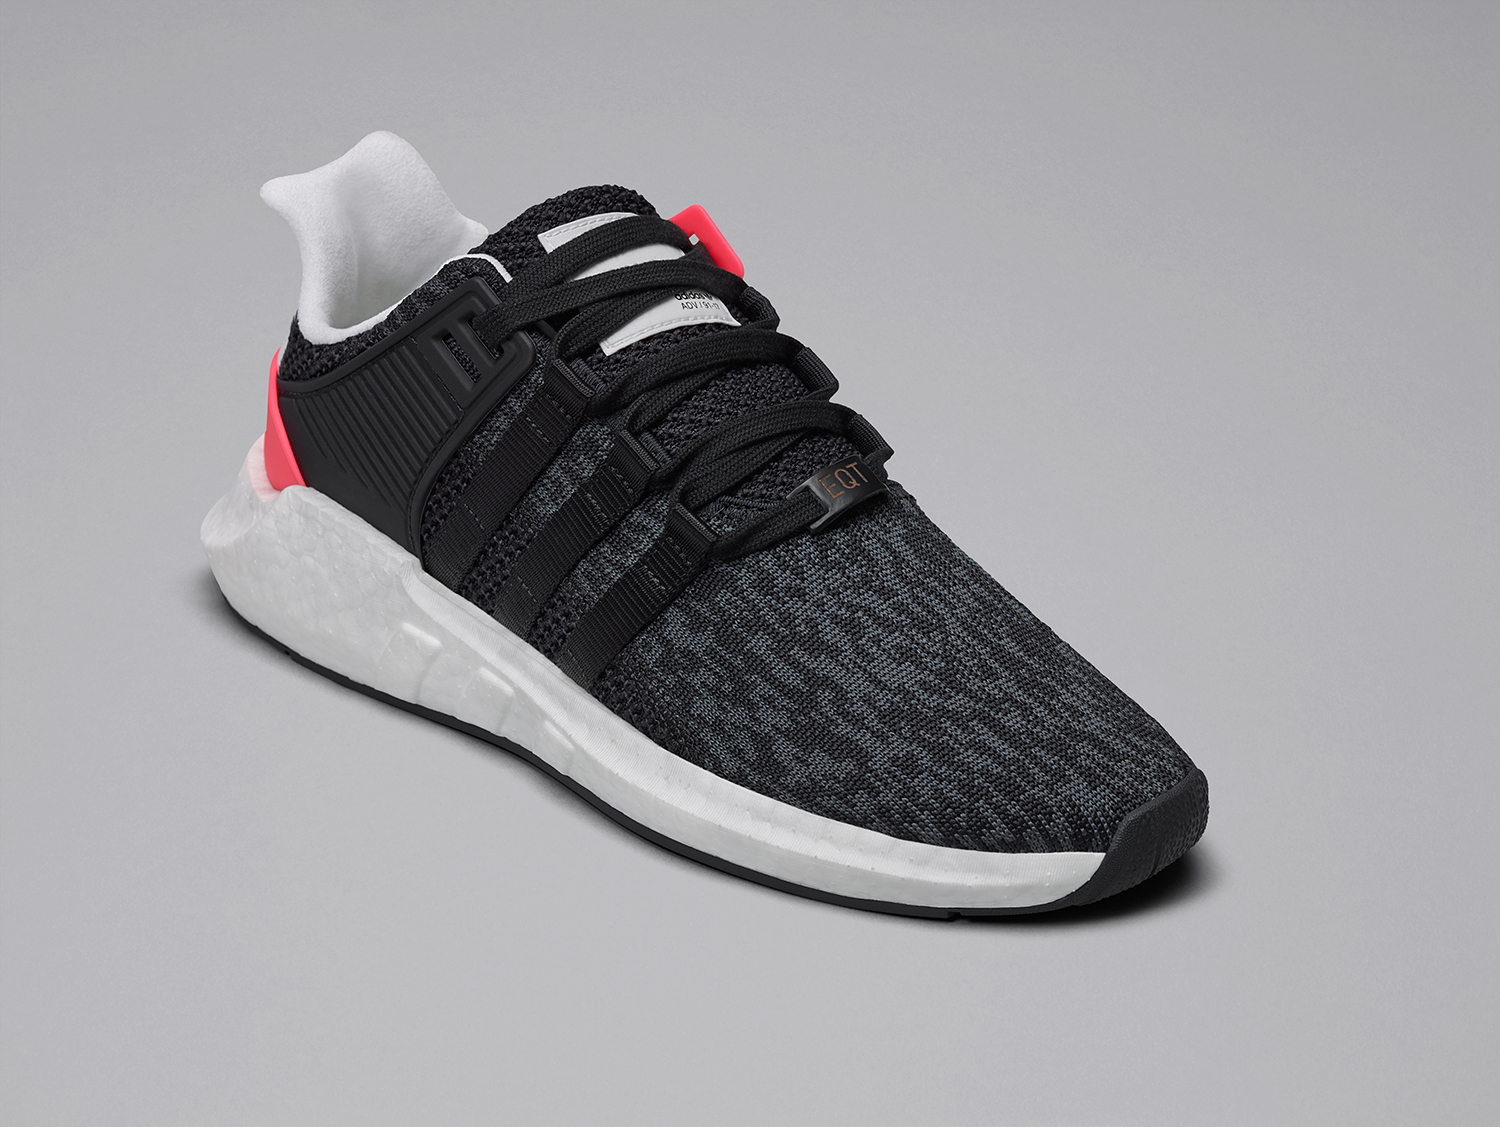 Adidas EQT Support ADV 93/17 Black Red